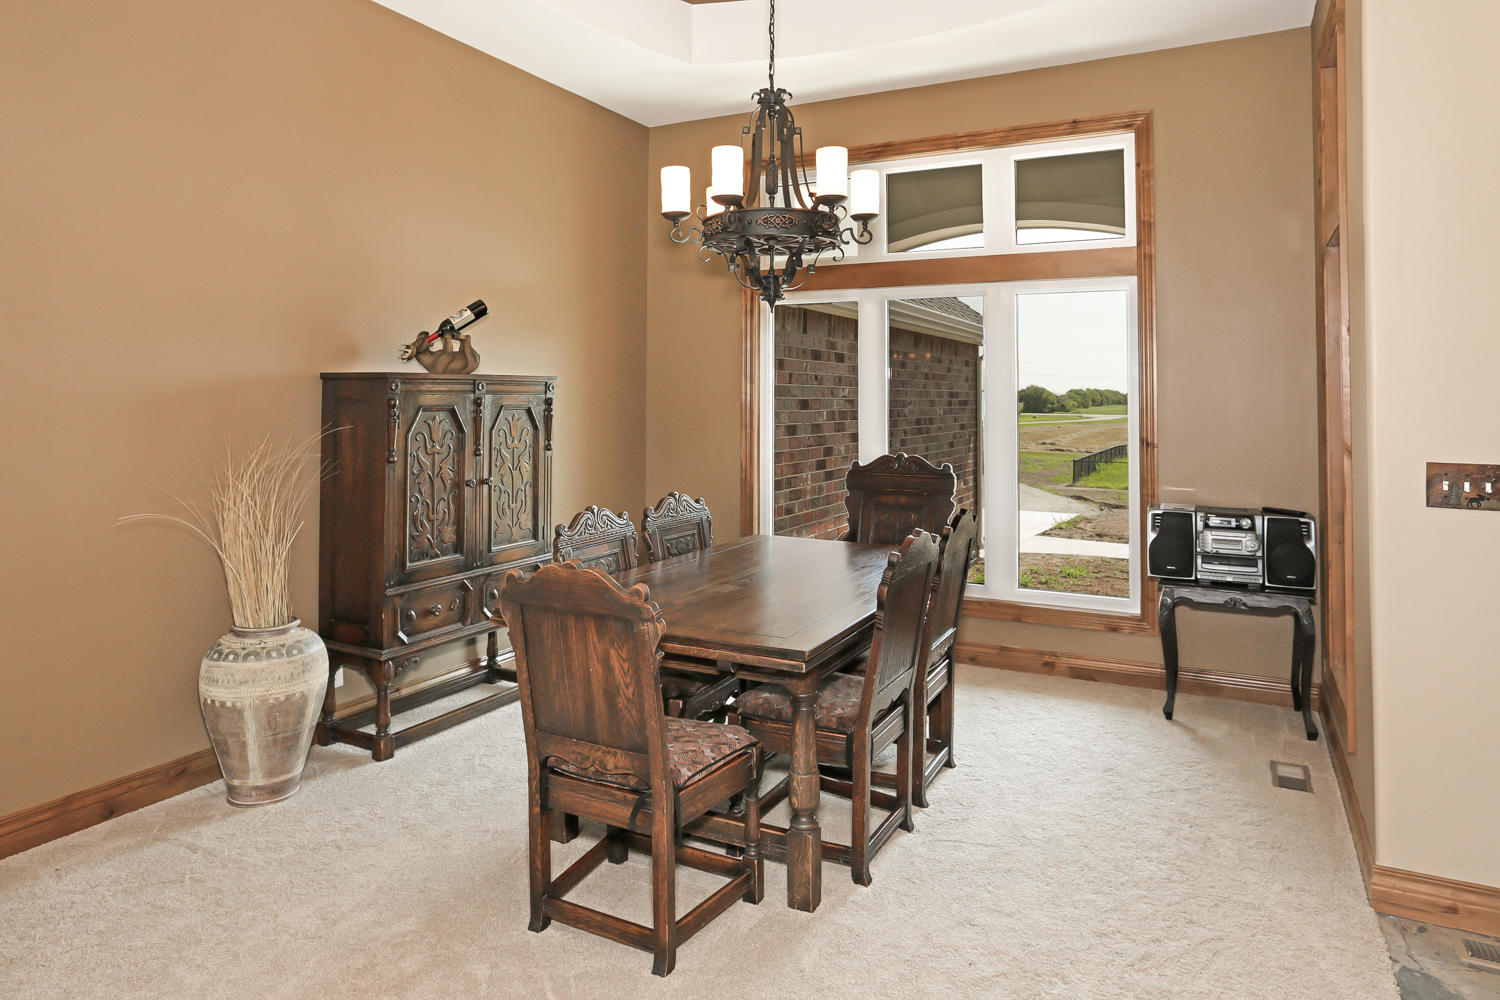 123 Anywhere St Clearwater KS-large-007-7-Dining Room-1500x1000-72dpi.jpg